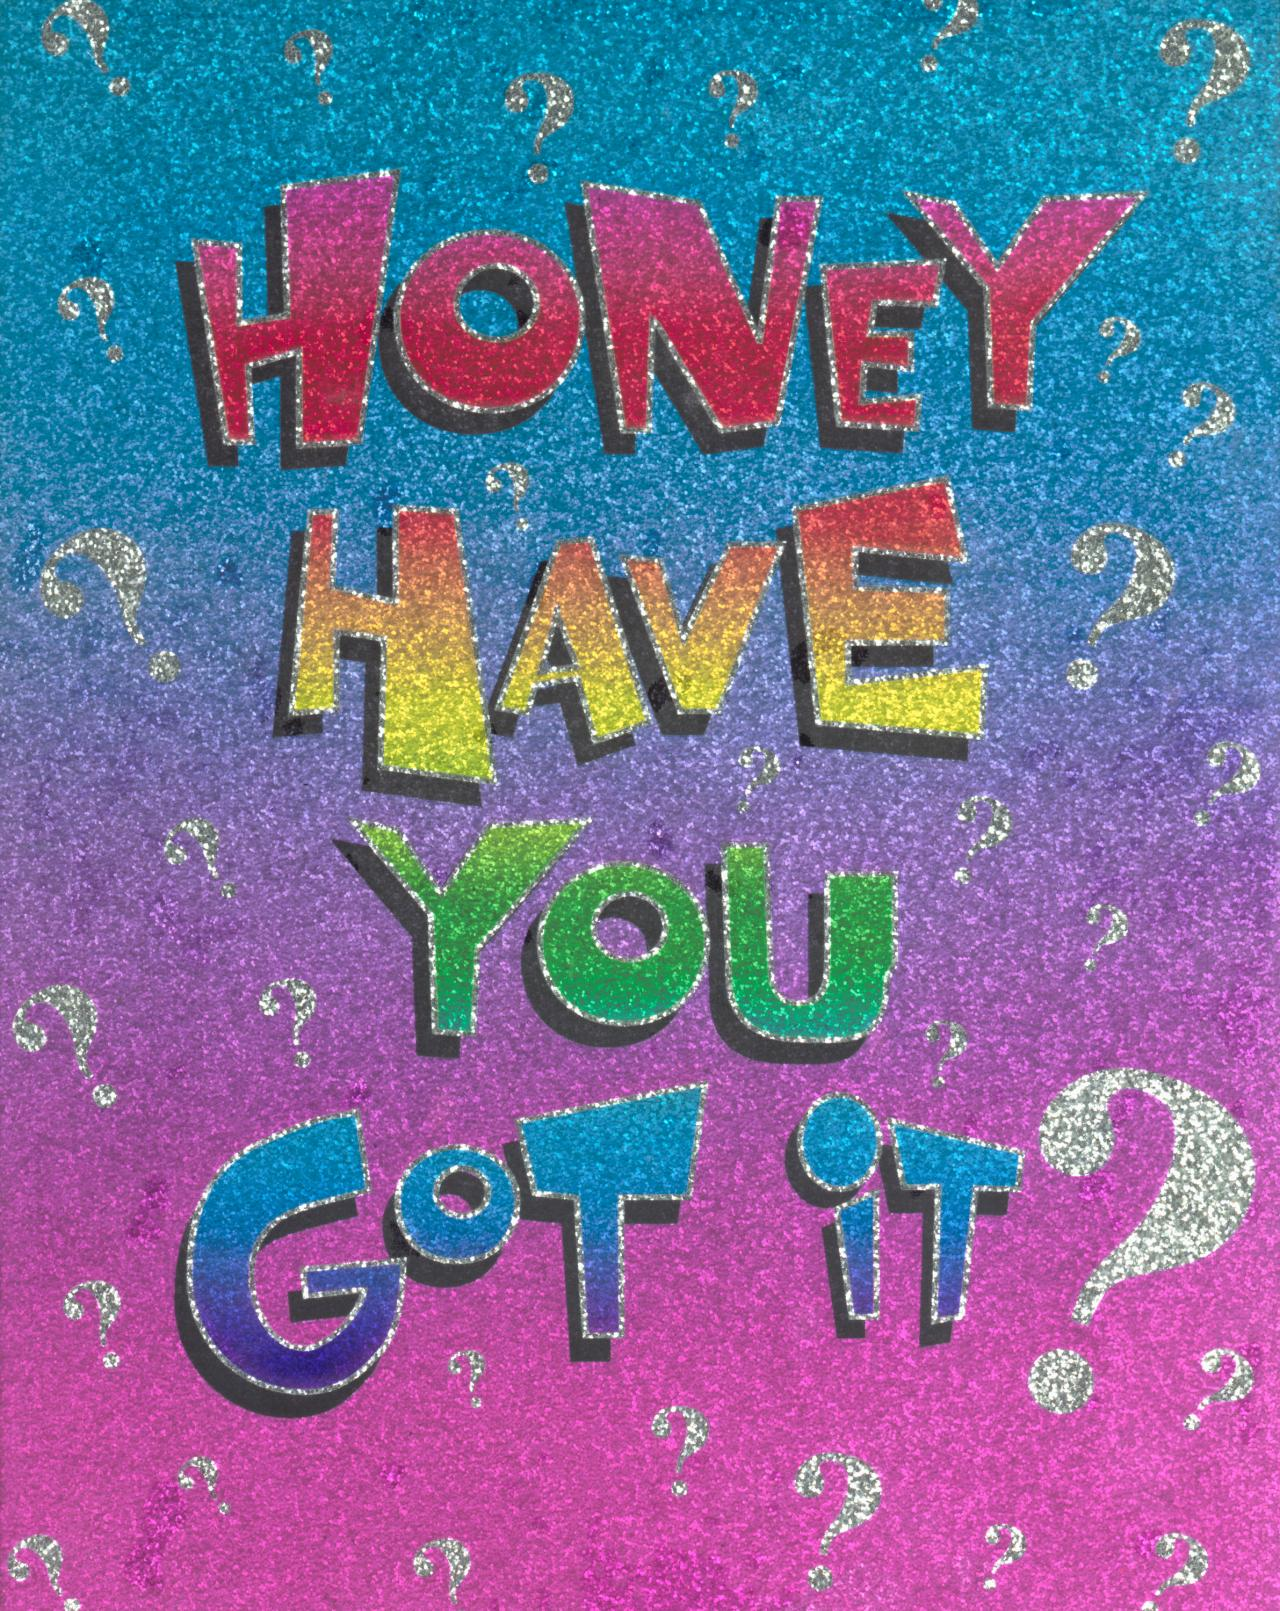 Honey have you got it?